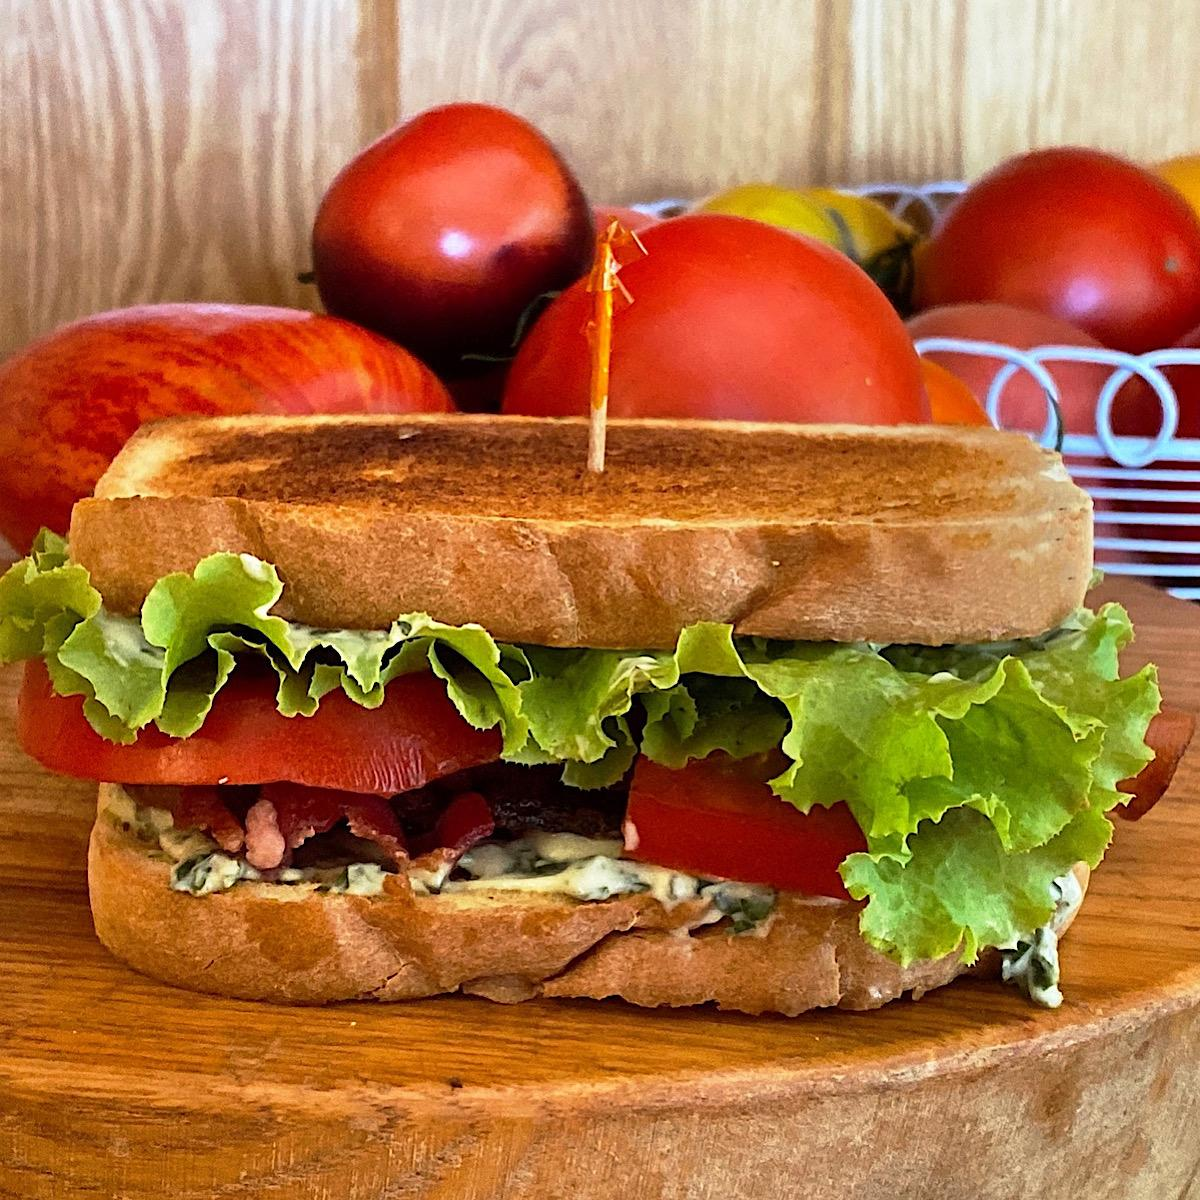 Classic BLT sandwich with basil mayonnaise and heirloom tomatoes